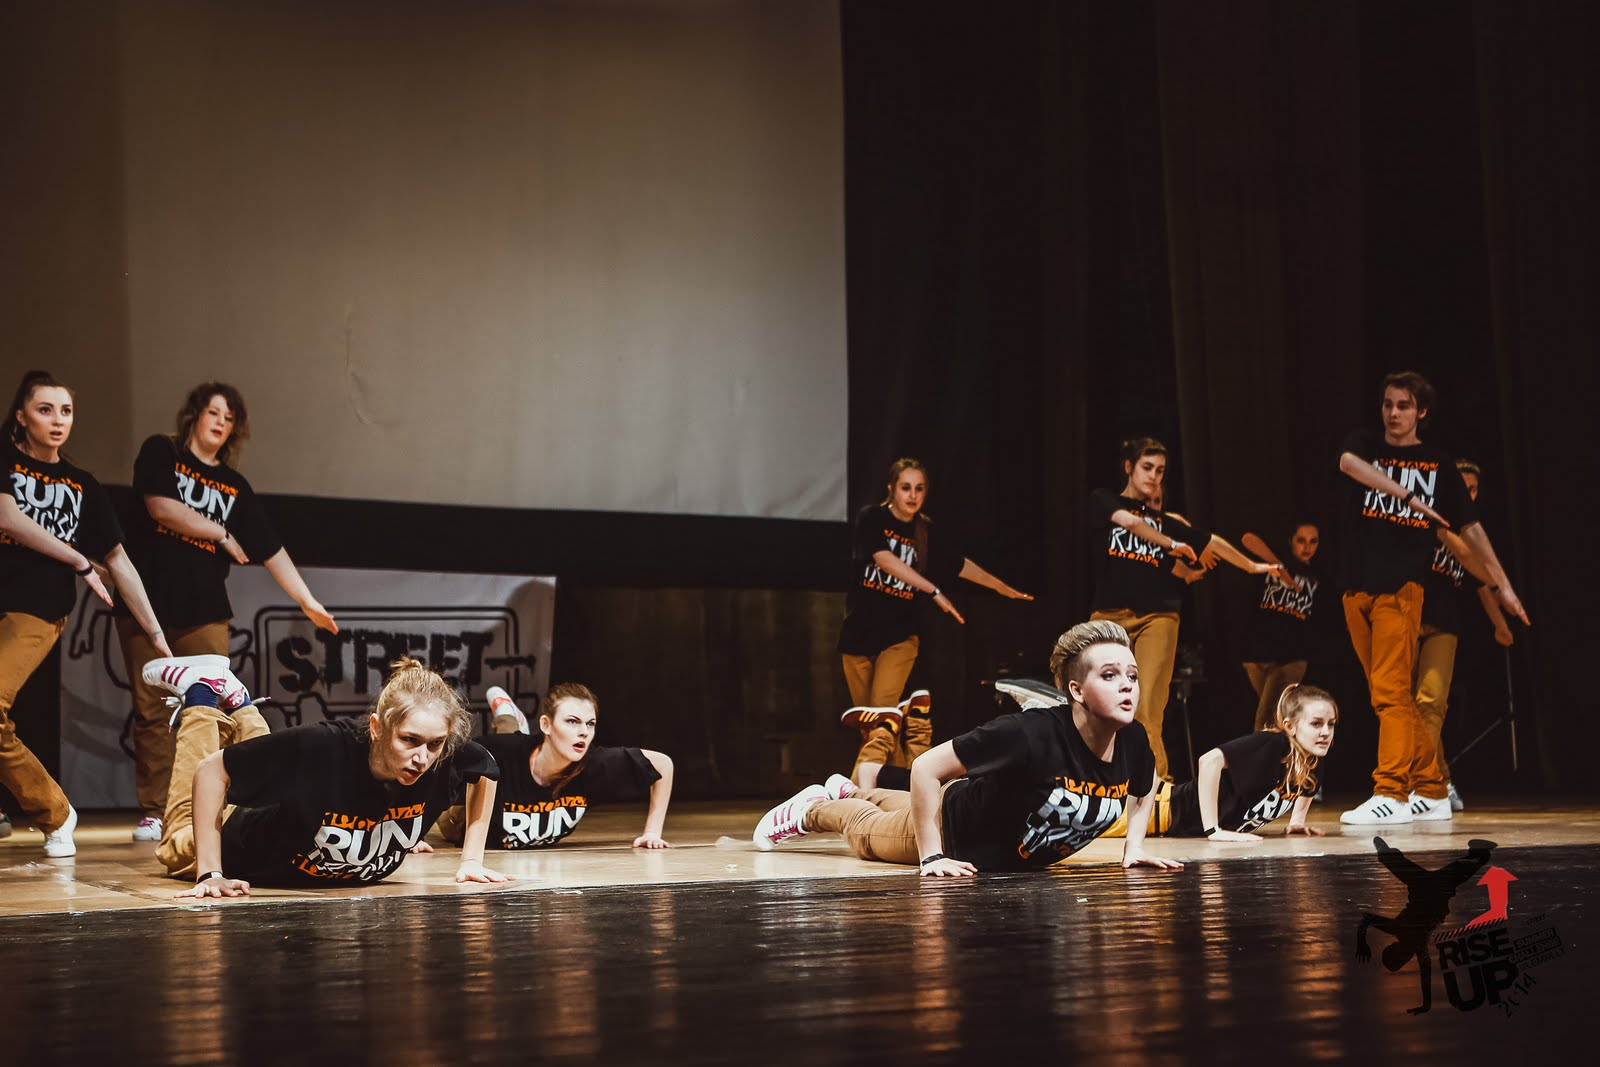 SKILLZ at RISEUP 2014 - _MG_7169.jpg